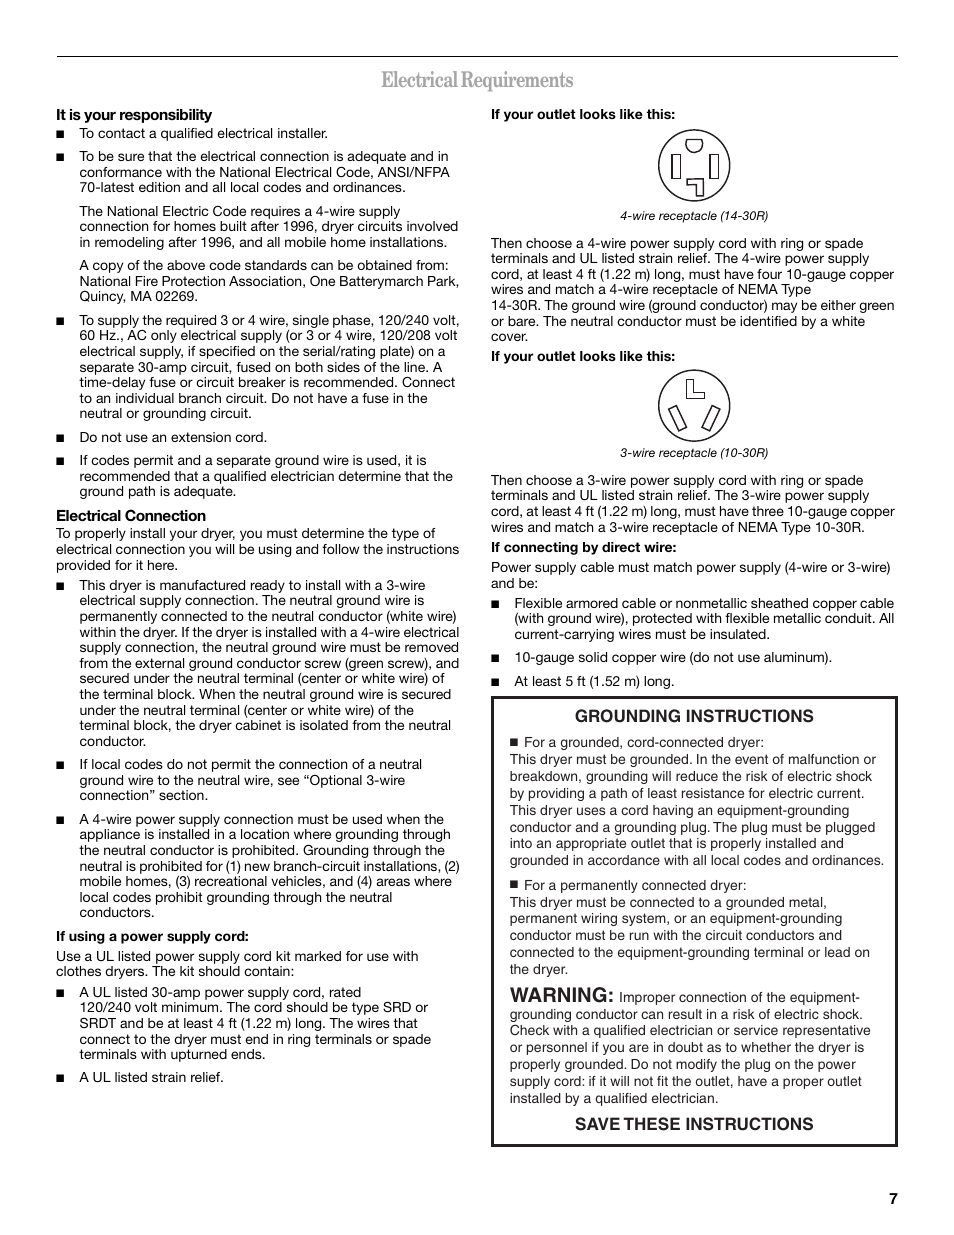 Electrical requirements, Warning, Grounding instructions save these ...